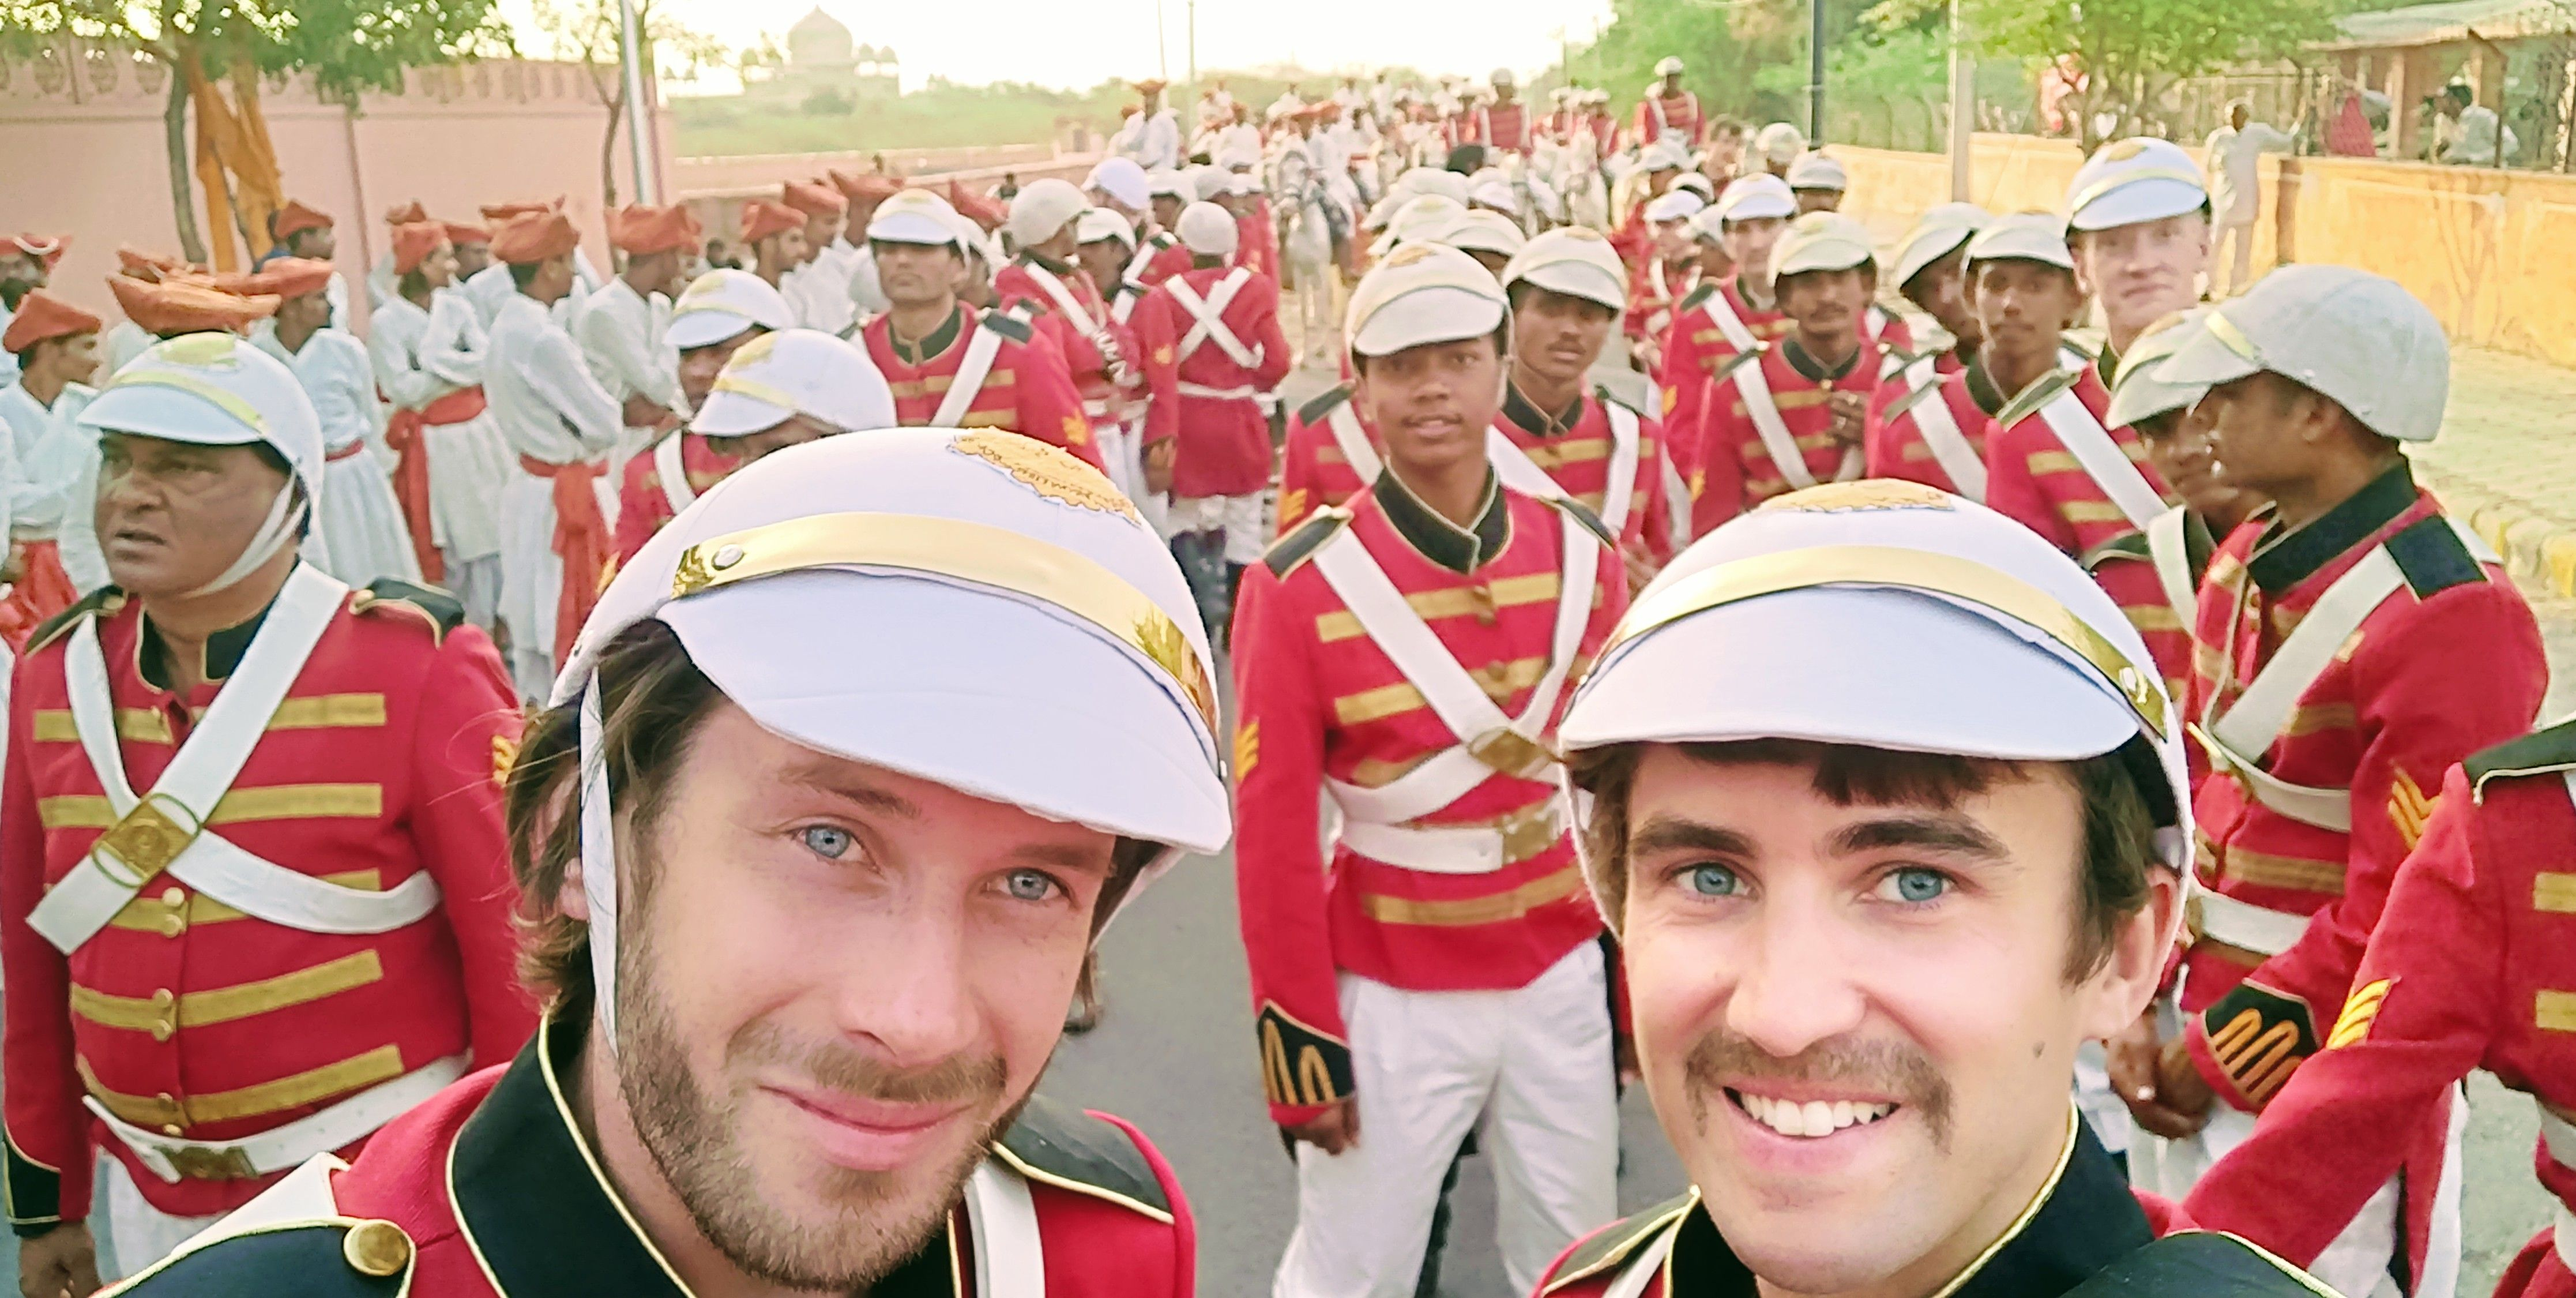 Bollywood extras as British soldiers in the Manikarnika movie